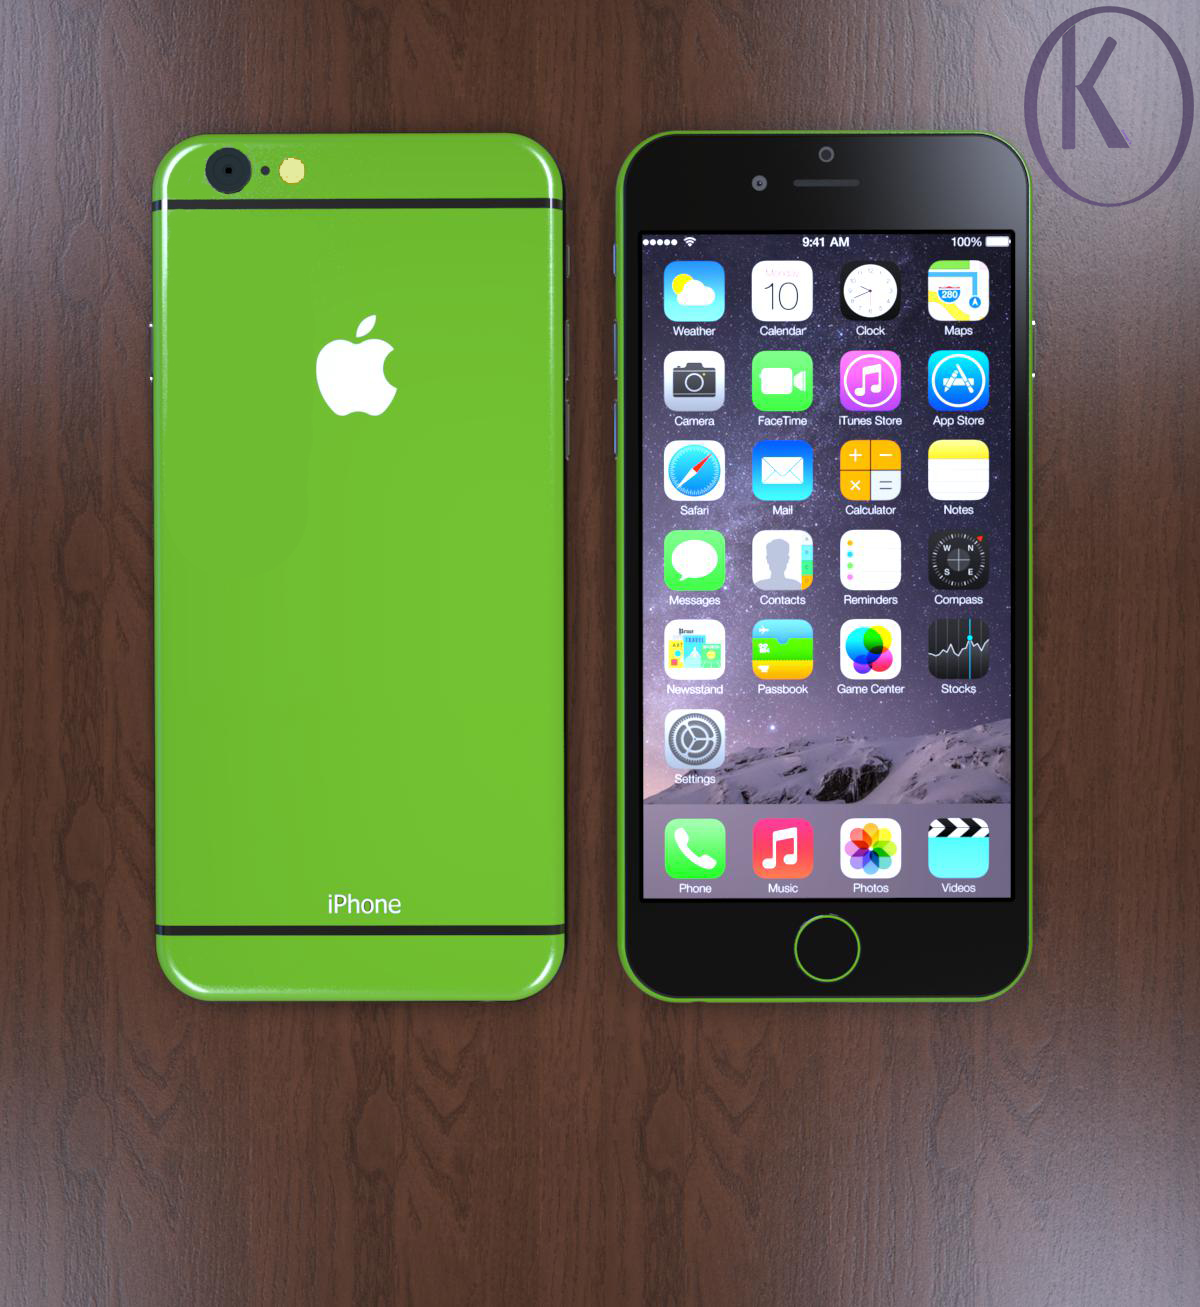 iPhone 6C Gets New Design Version From Kiarash Kia : Concept Phones